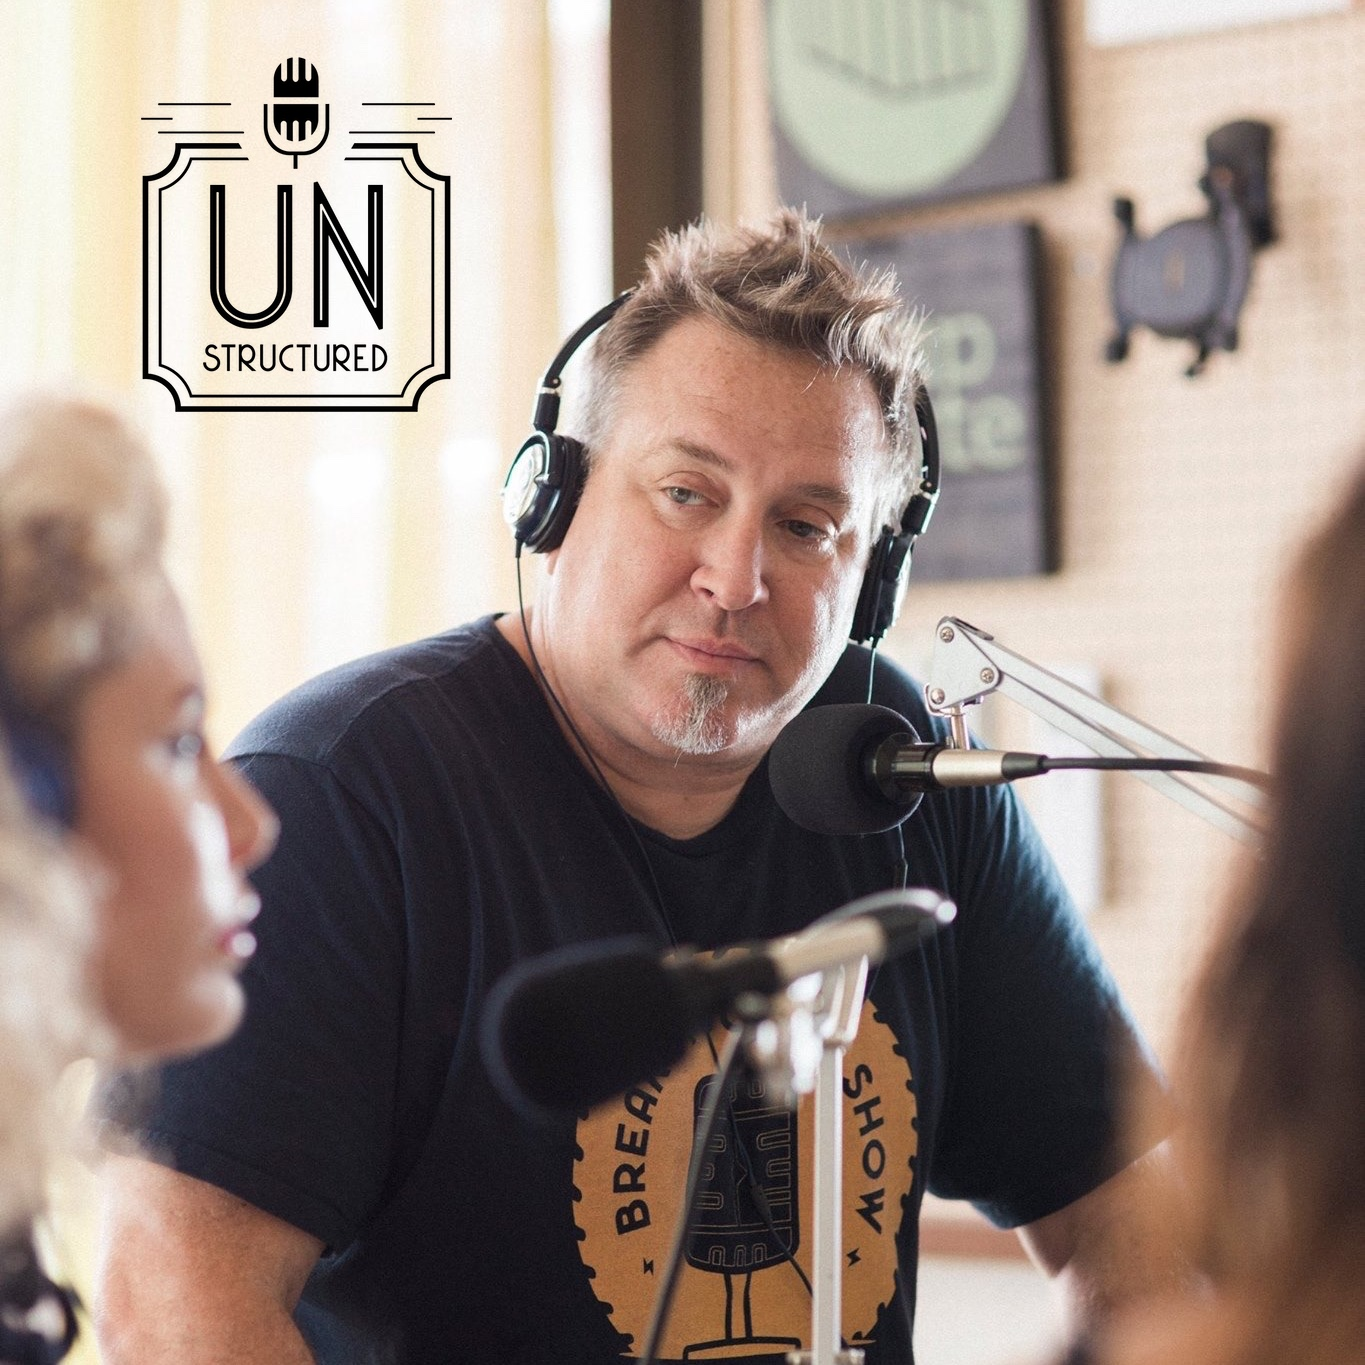 145 - Pete A Turner - Unique wide-ranging and well-researched unstructured interviews hosted by Eric Hunley UnstructuredPod Dynamic Informal Conversations